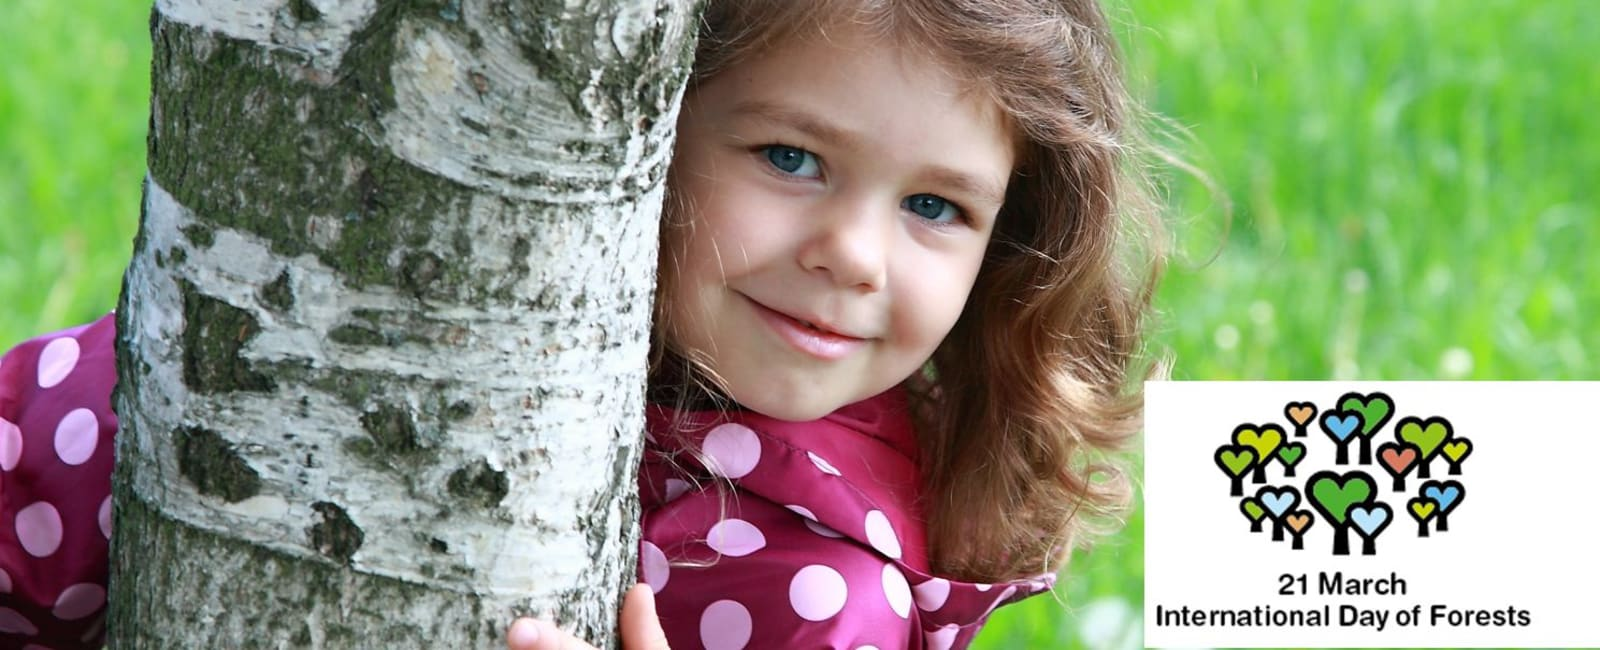 Child peeking round a tree and Int. Day of Forests logo